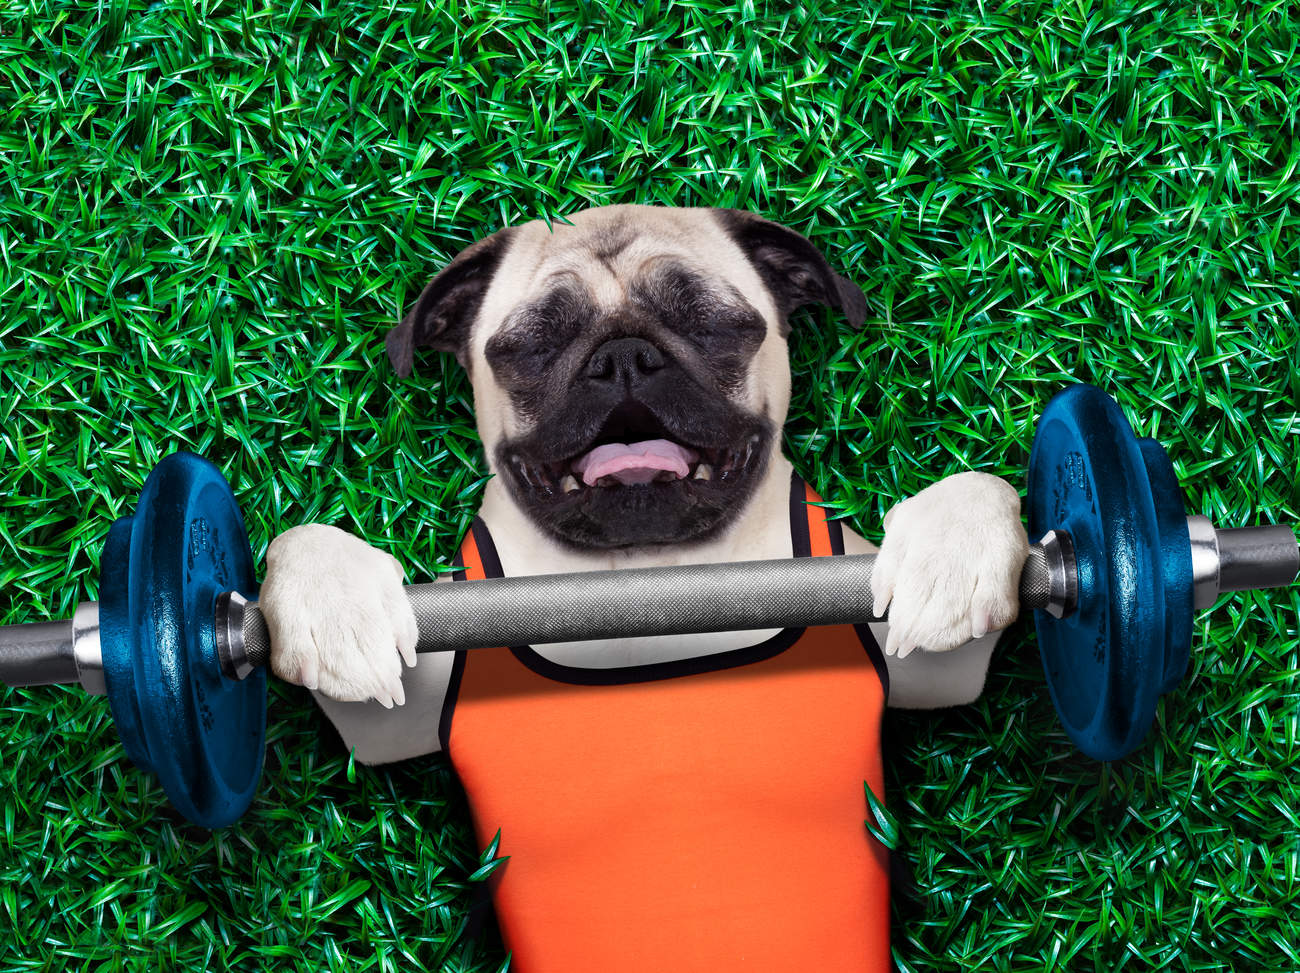 dog-lifting-weights-out-of-shape